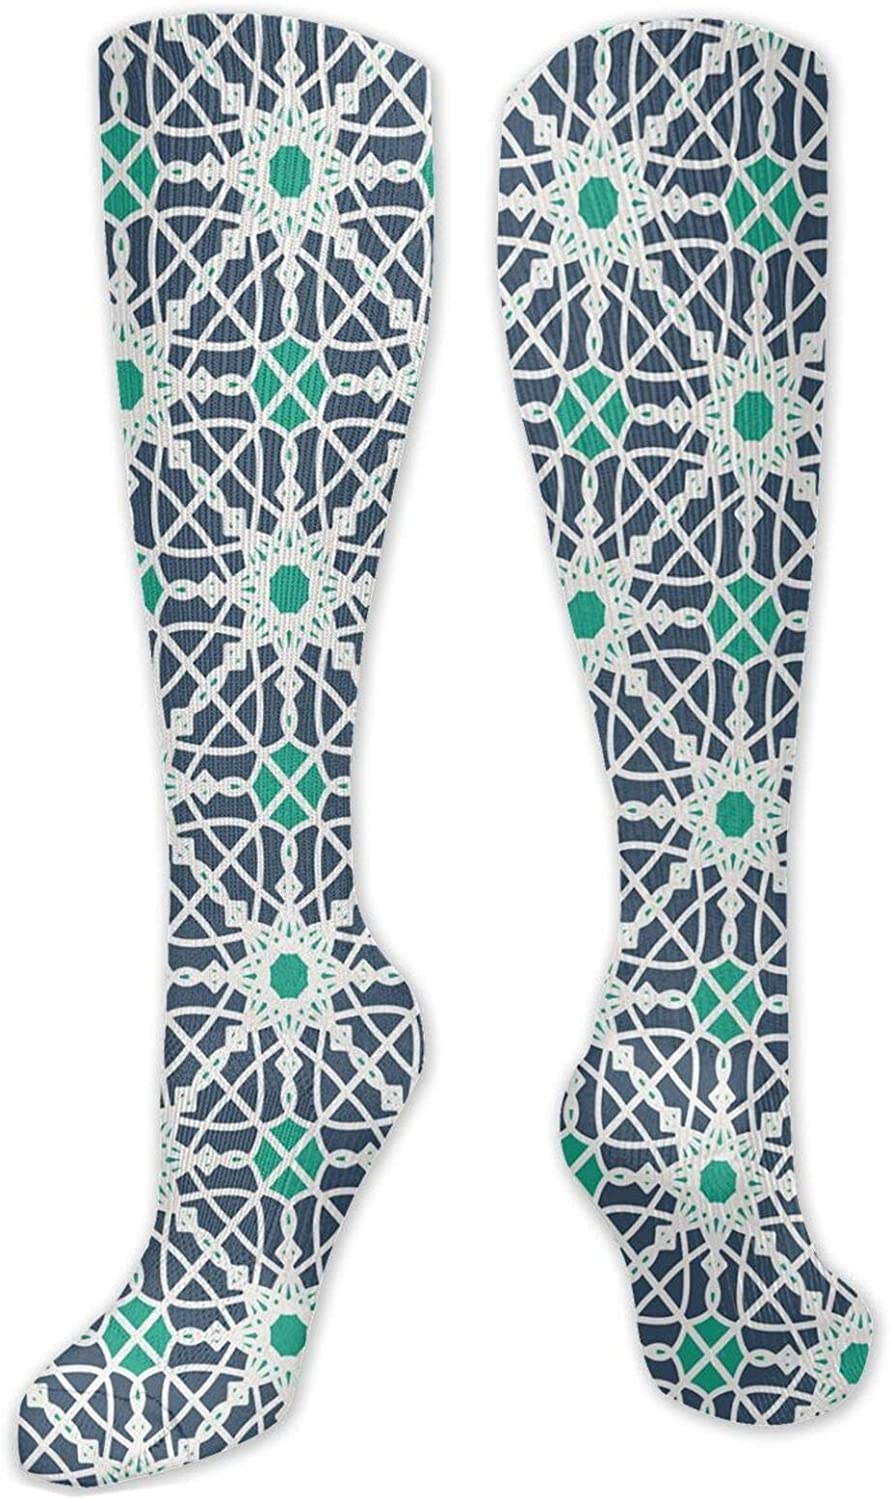 Compression High Socks Arabesque Floral Element Geometrical With Free Shipping New Max 78% OFF